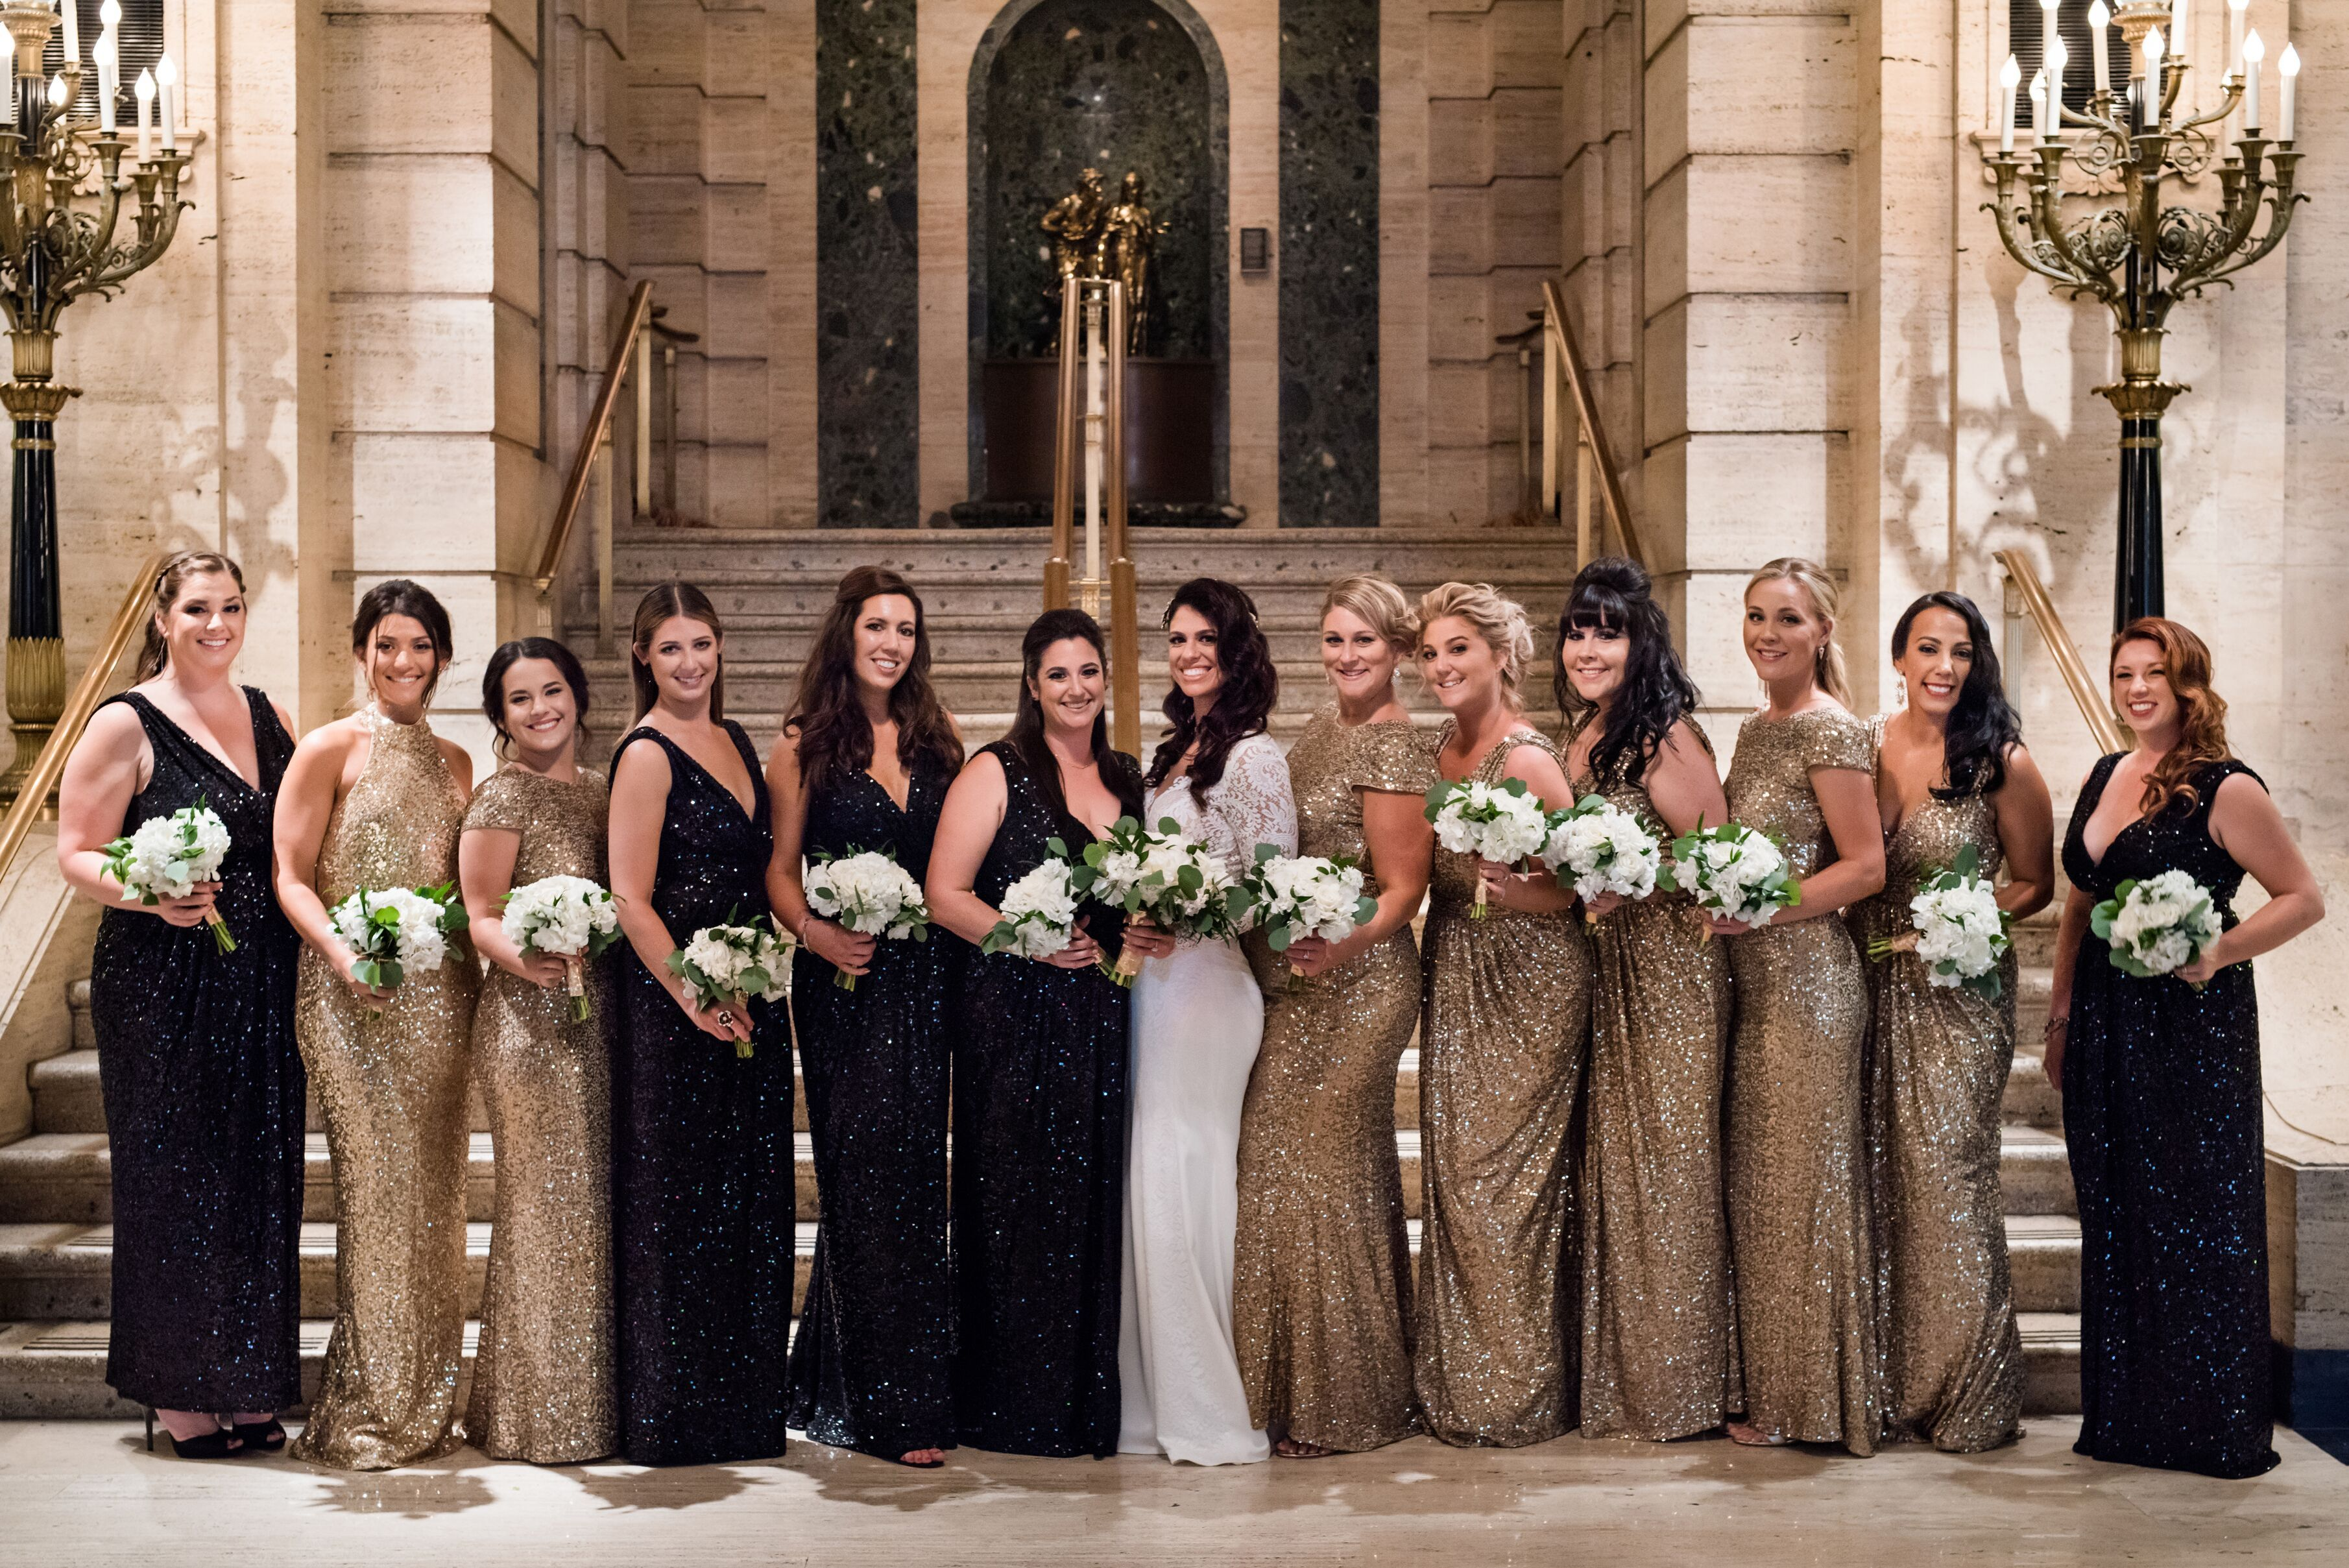 Roaring 20 S Wedding Black Gold Bridesmaid Dresses At Palmer House In Chicago Ill Roaring 20s Wedding Roaring 20s Bridesmaid Dresses Roaring 20s Bridesmaids